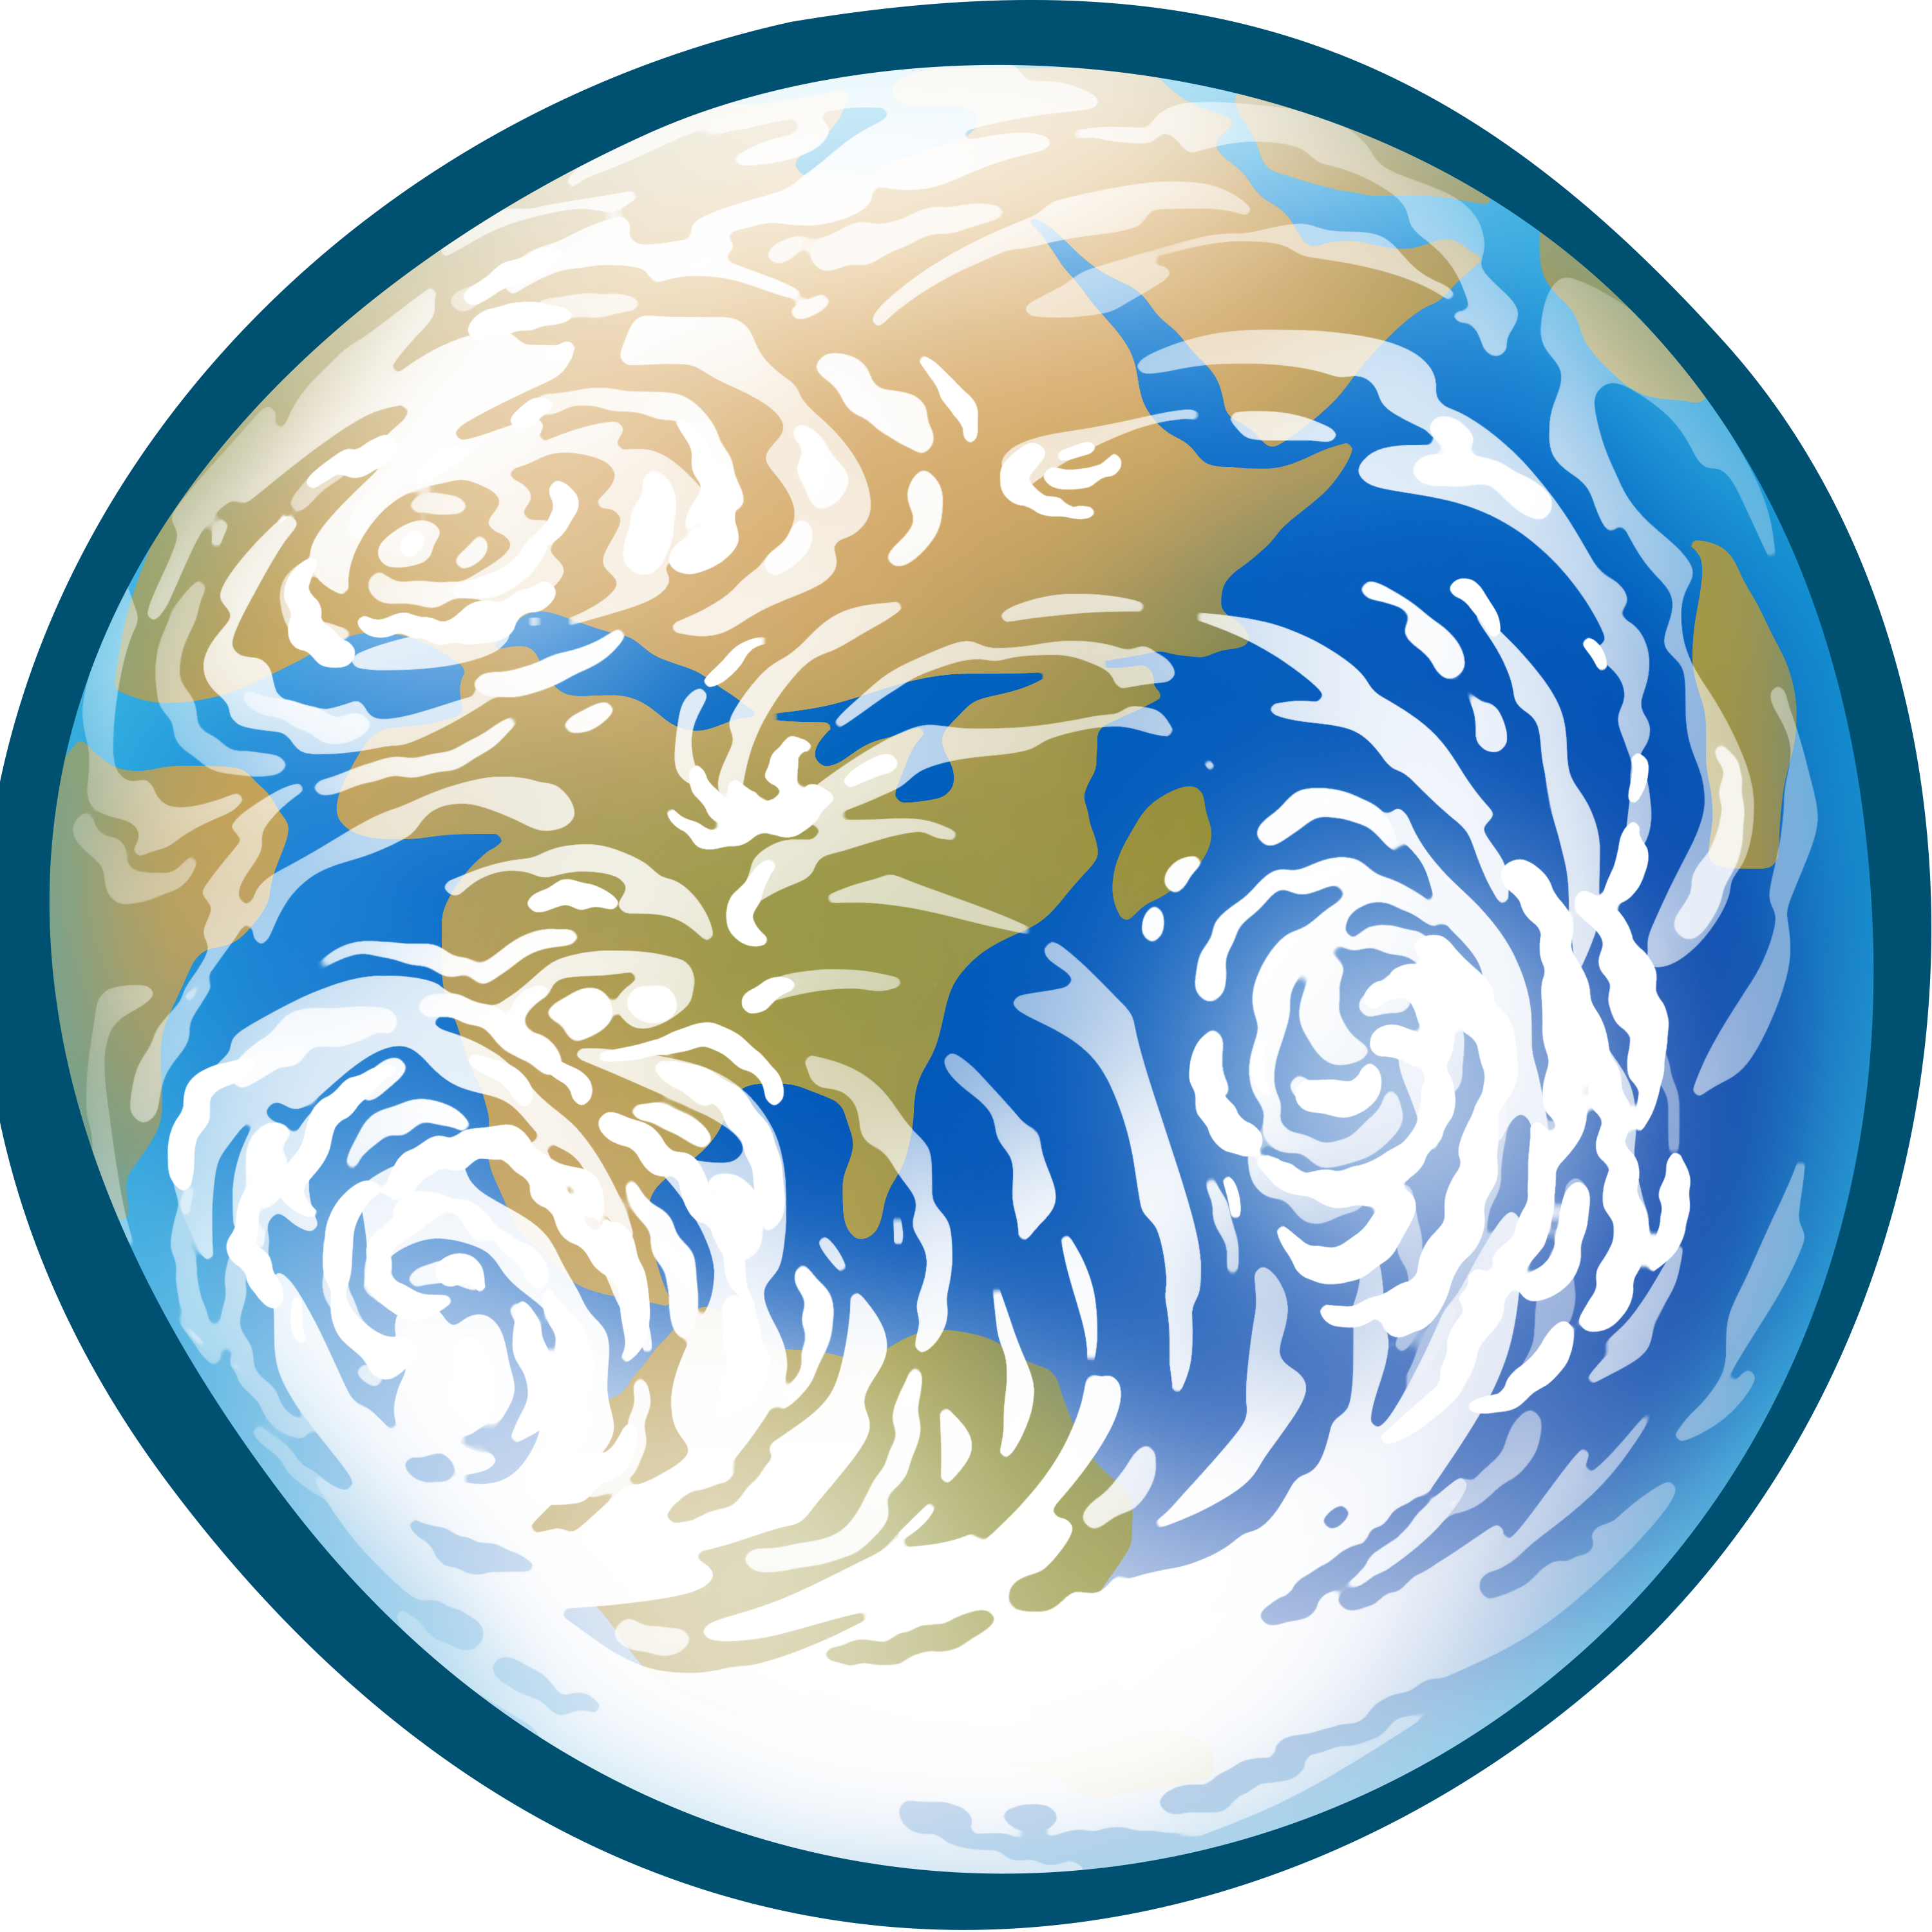 Earth png vbs galactic. Planeten clipart starveyors